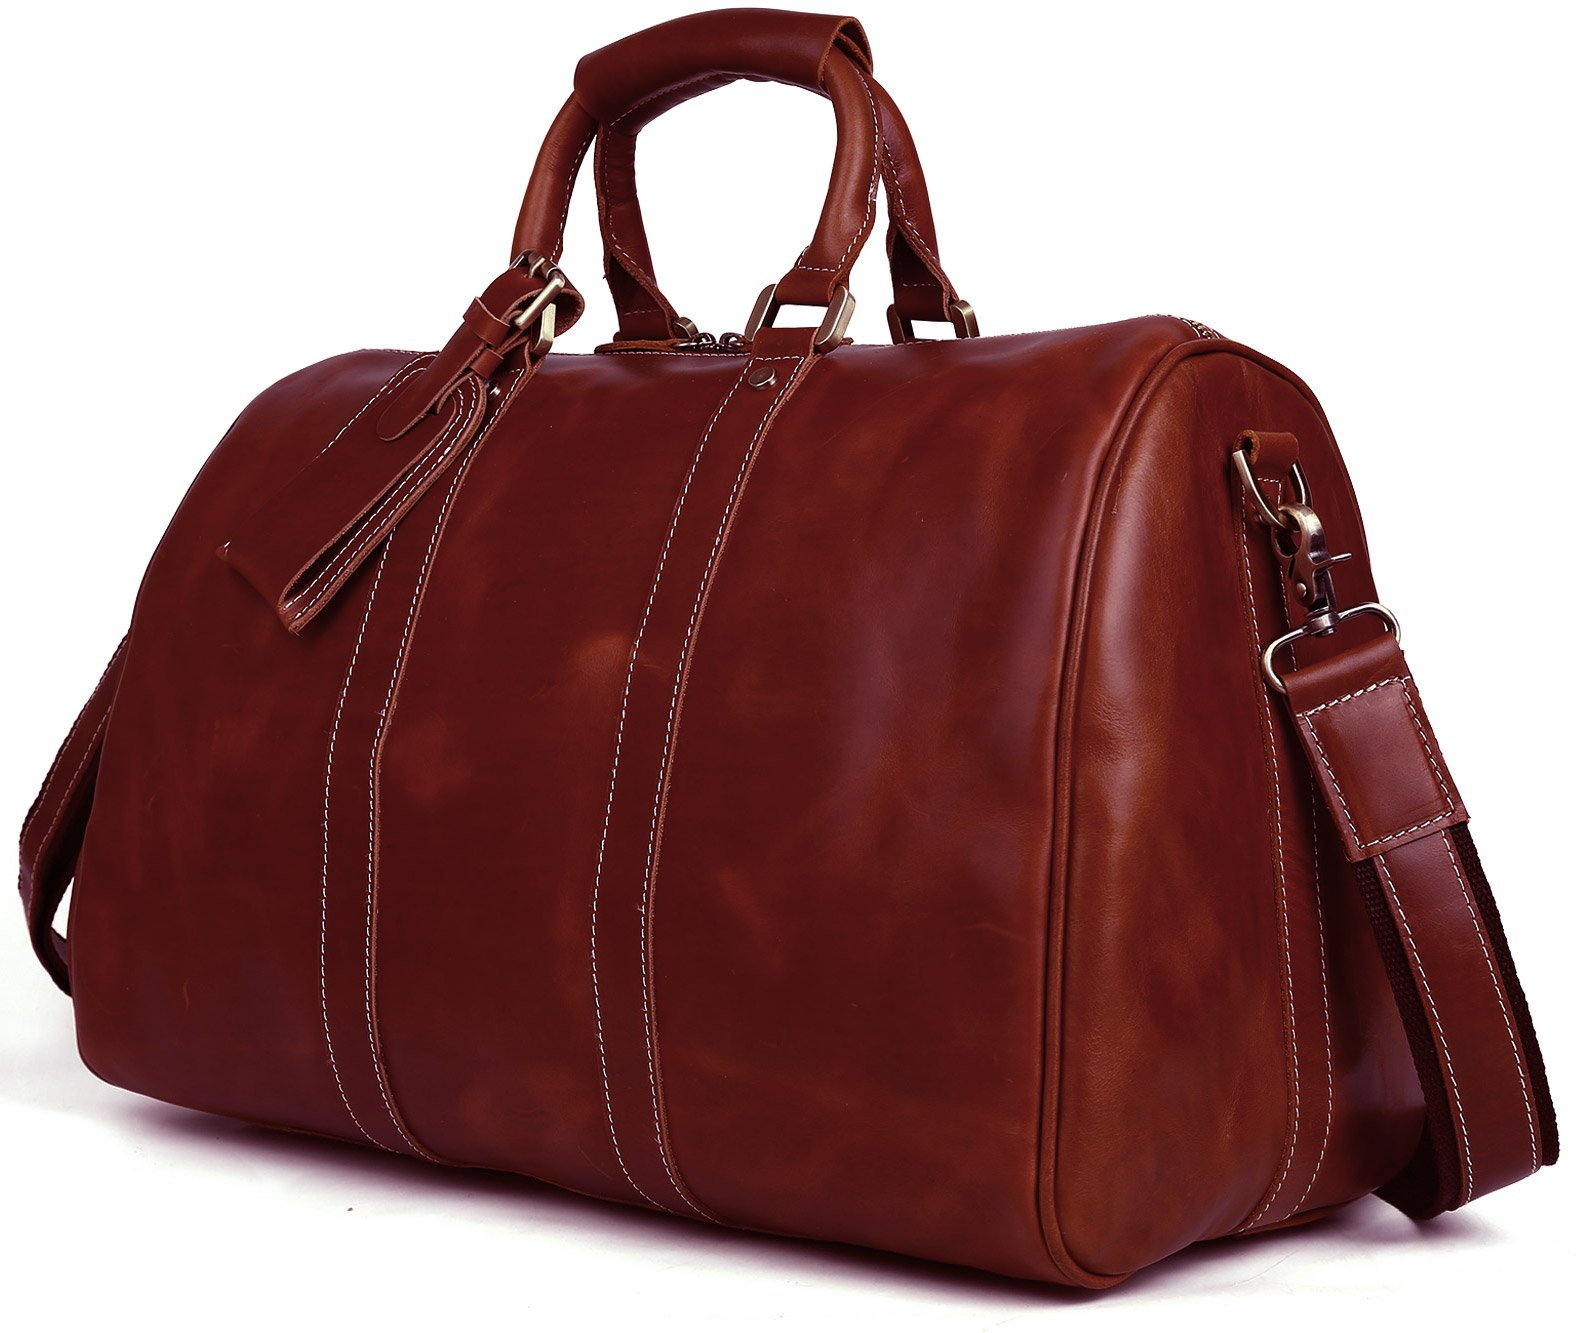 BAIGIO Men Leather Weekend/Overnight Travel Duffle Bag Carry On Cabin Duffel Luggage (Red Brown)